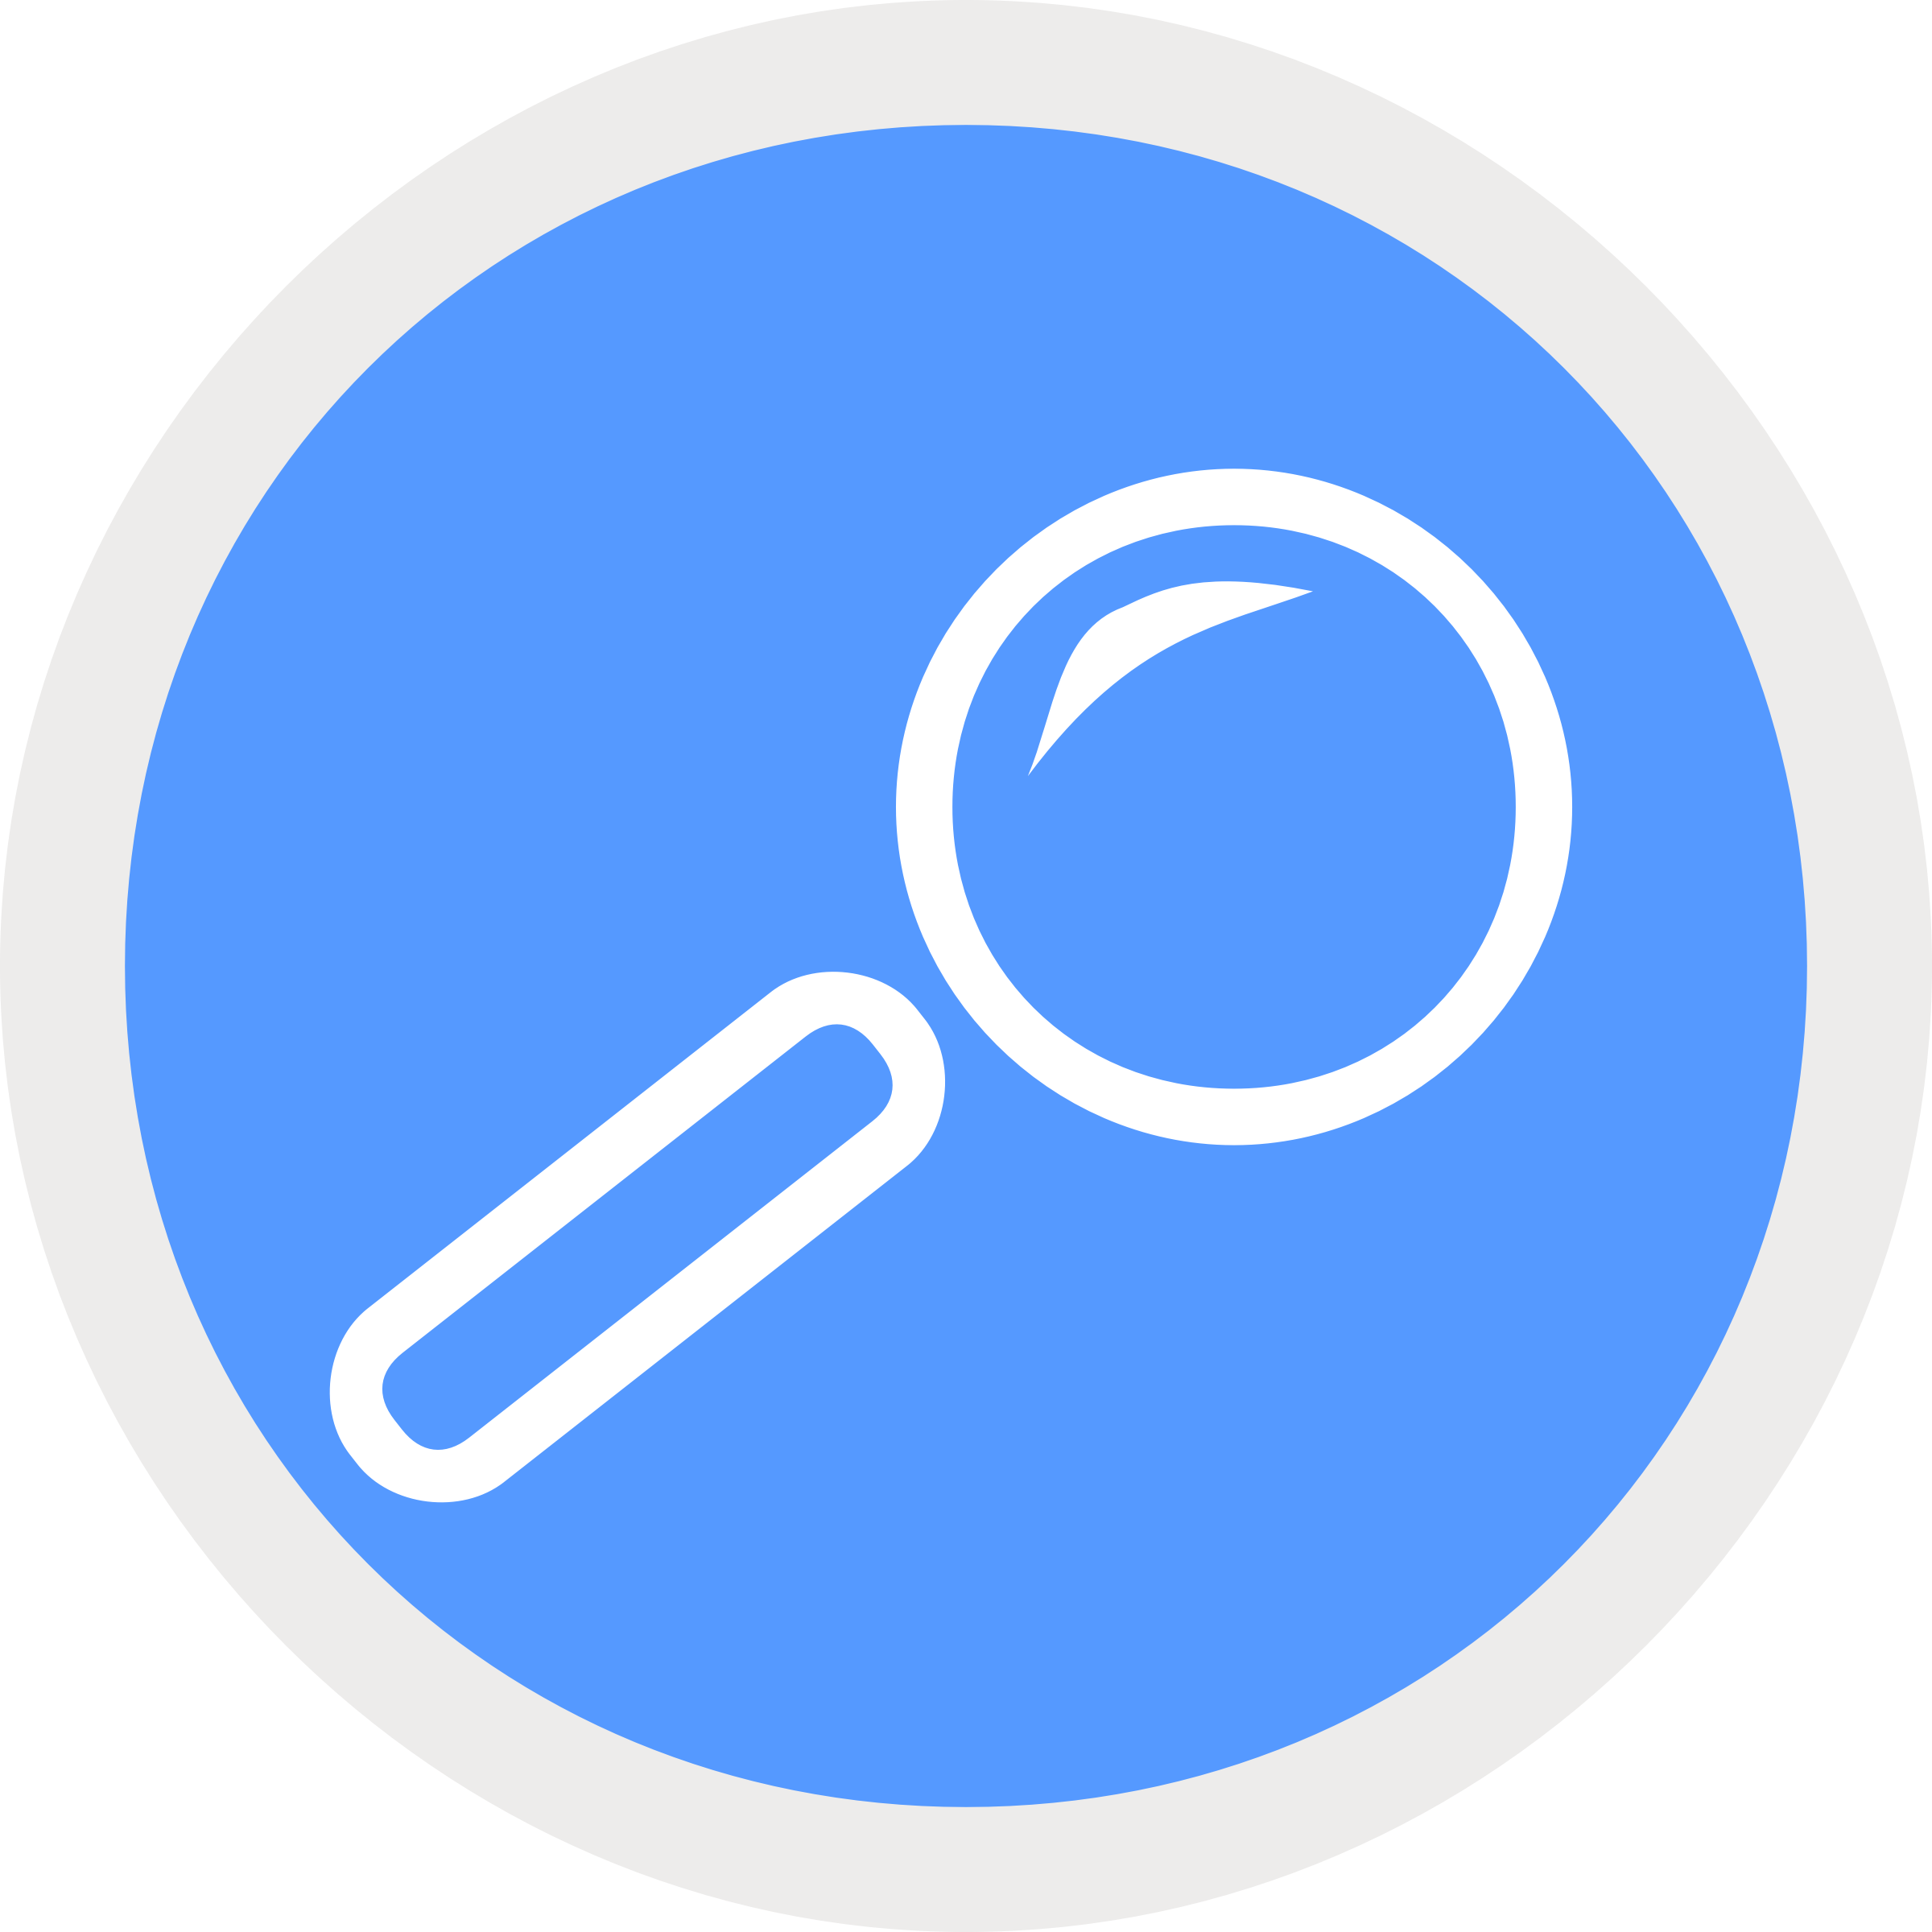 Magnifying Glass Icon by isaiah658